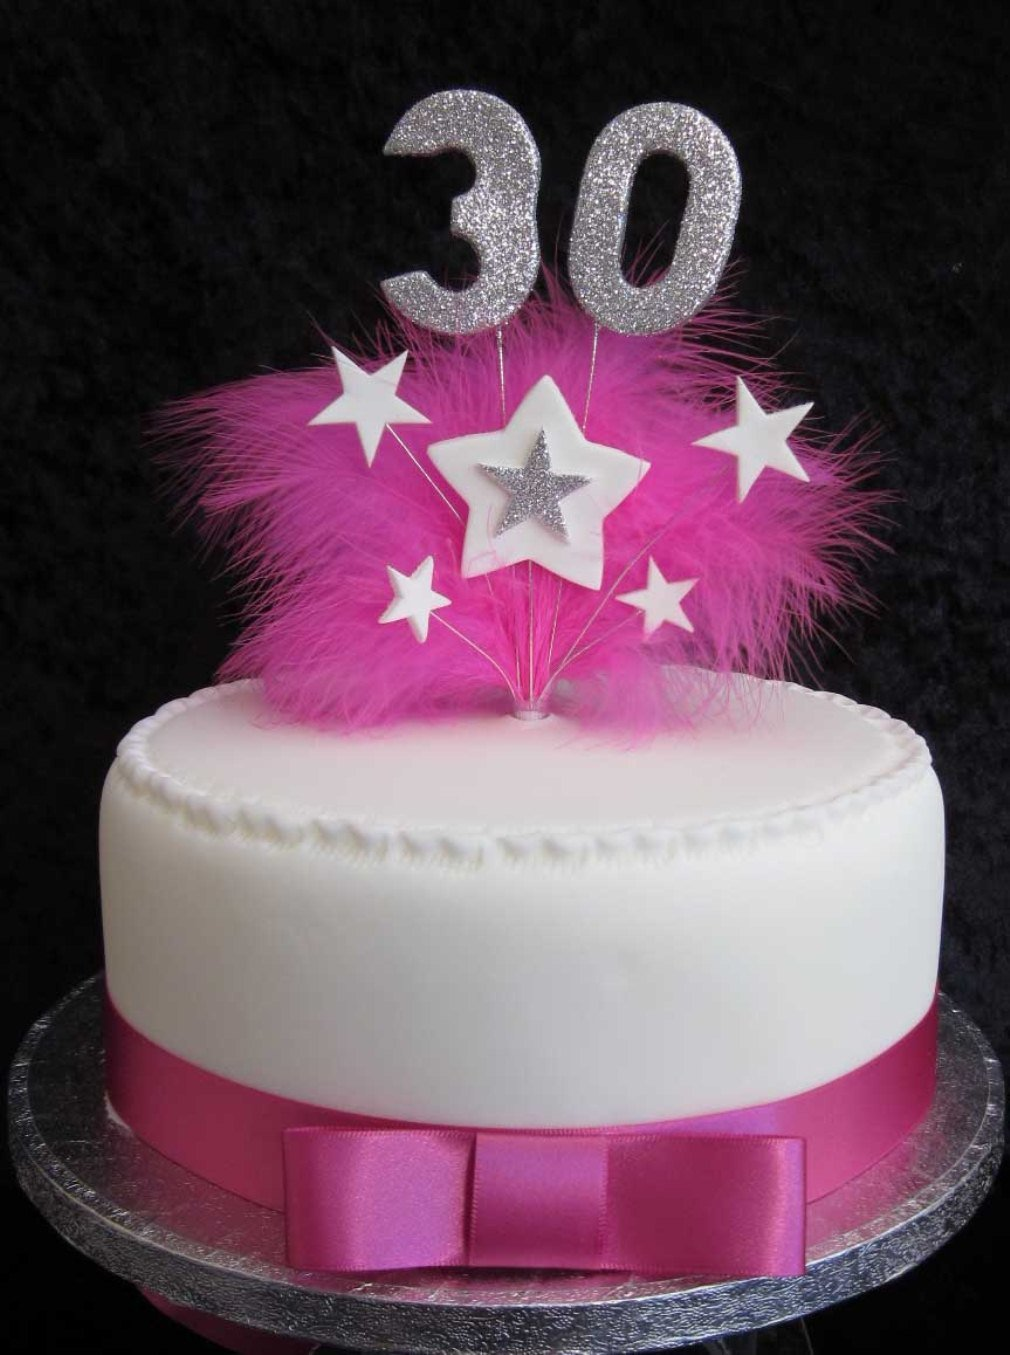 Pleasing 30Th Birthday Cake Topper With Silver Glittered Numbers And Hot Funny Birthday Cards Online Overcheapnameinfo